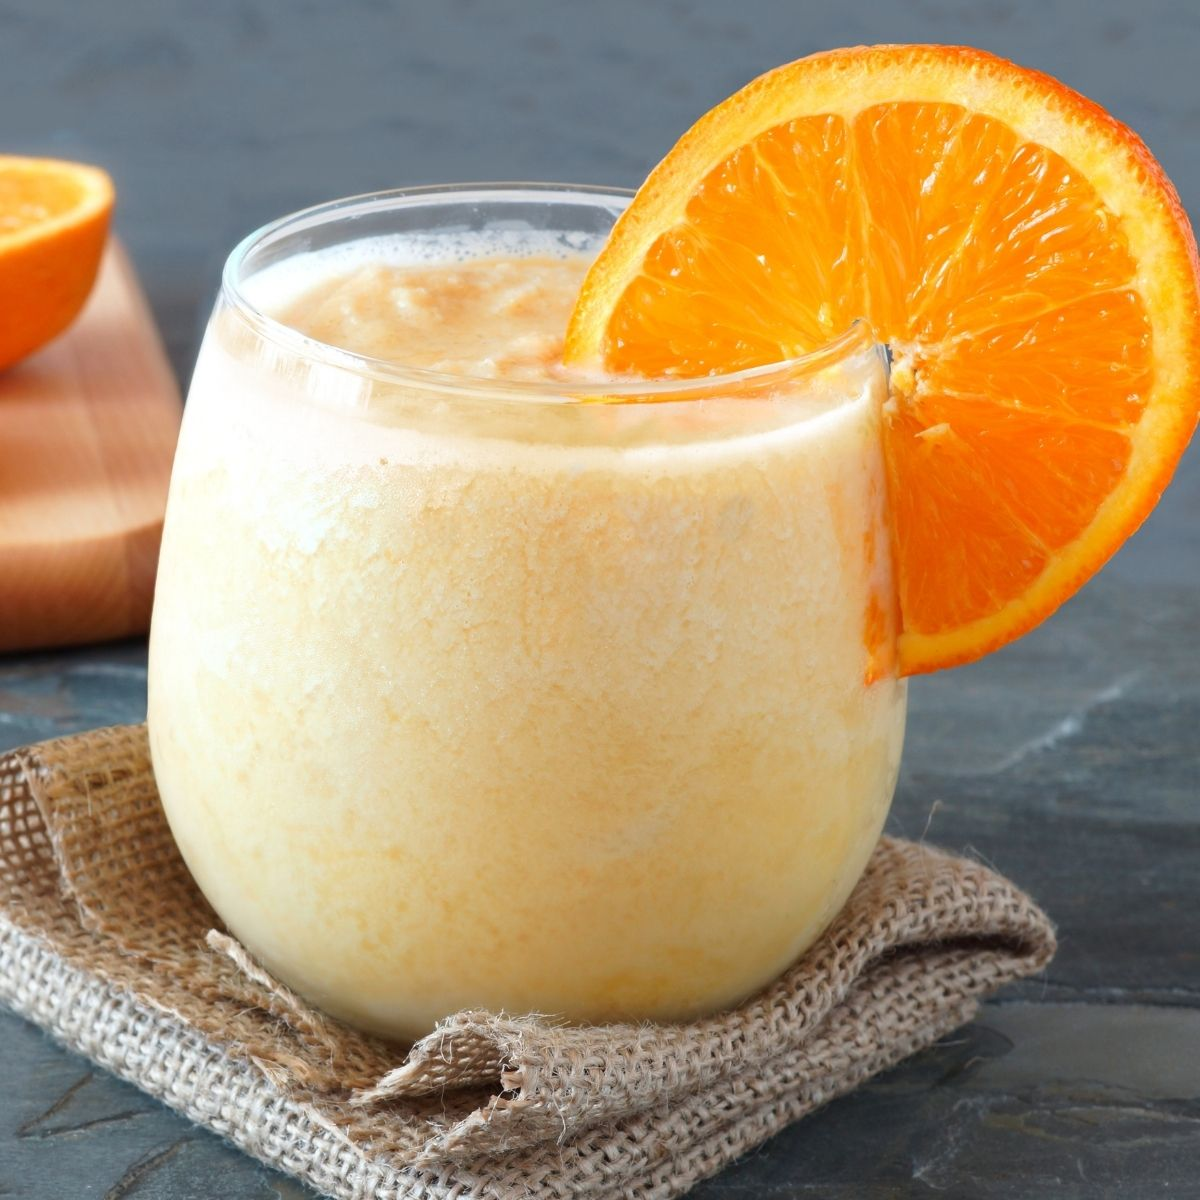 Orange Dreamsicle Smoothie Recipe in a clear glass with an orange slice on the rim